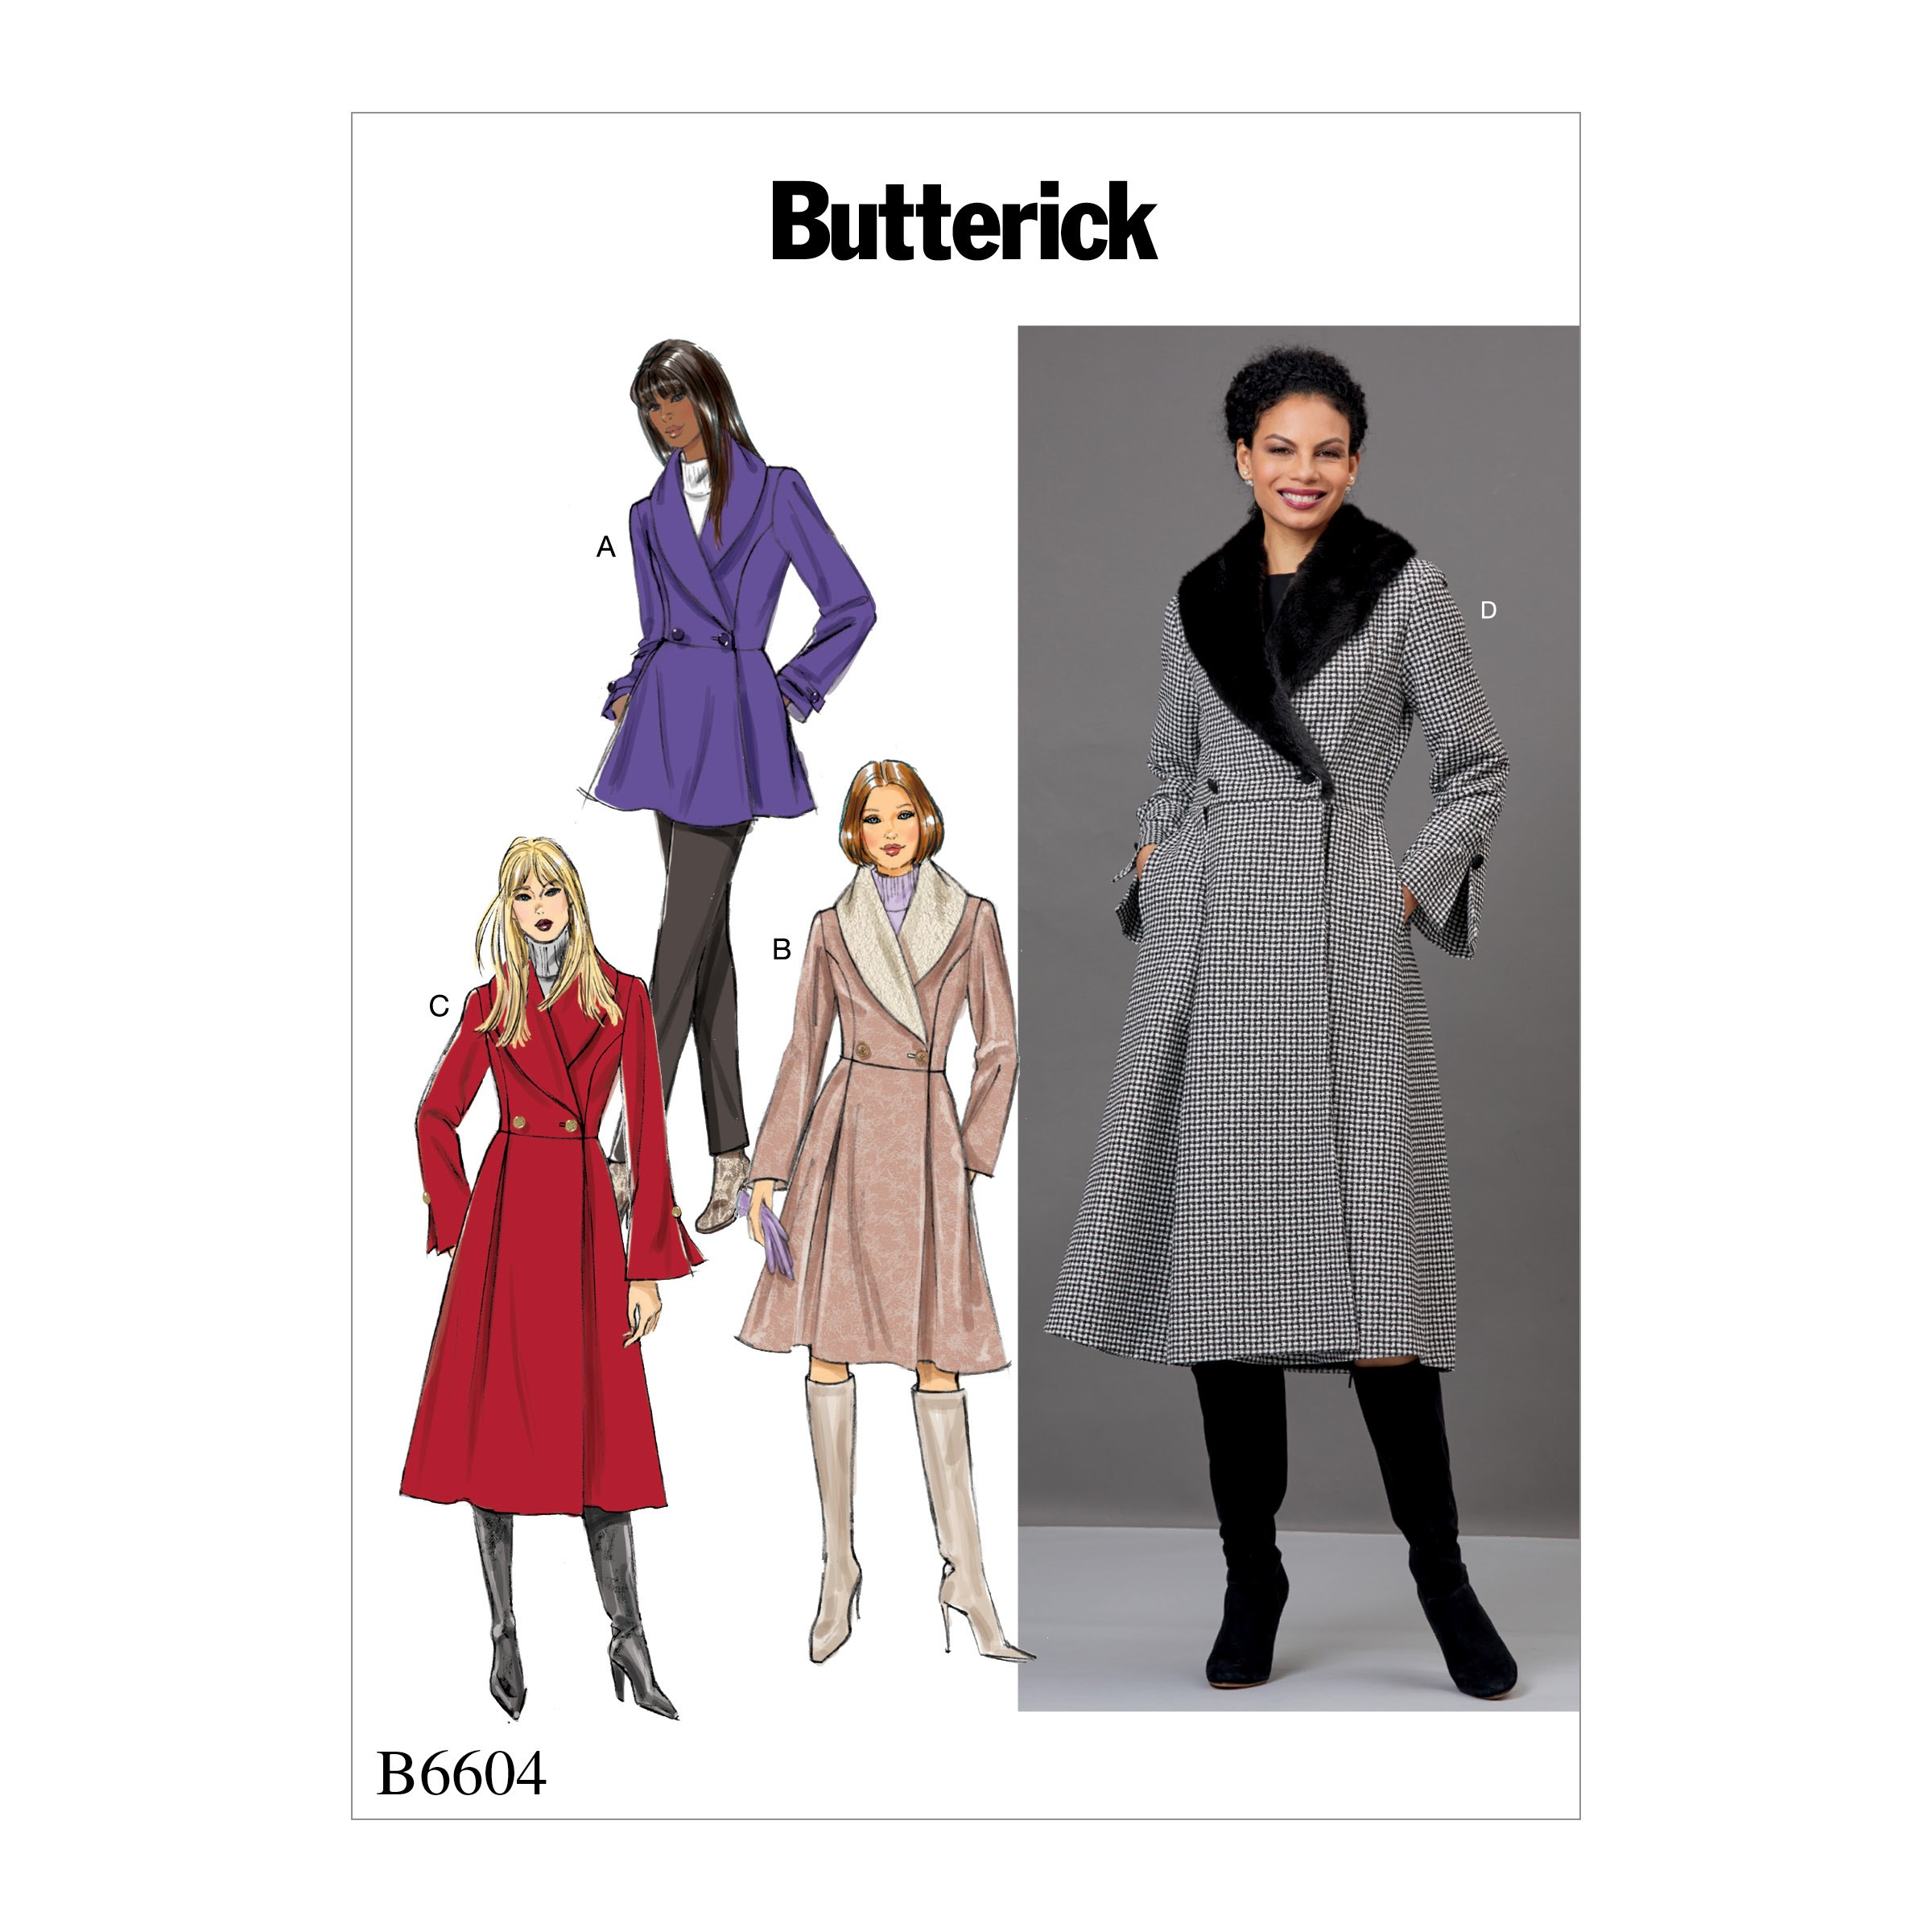 Butterick Sewing Pattern 6604 Misses' Jackets and Coats with Shawl Collar